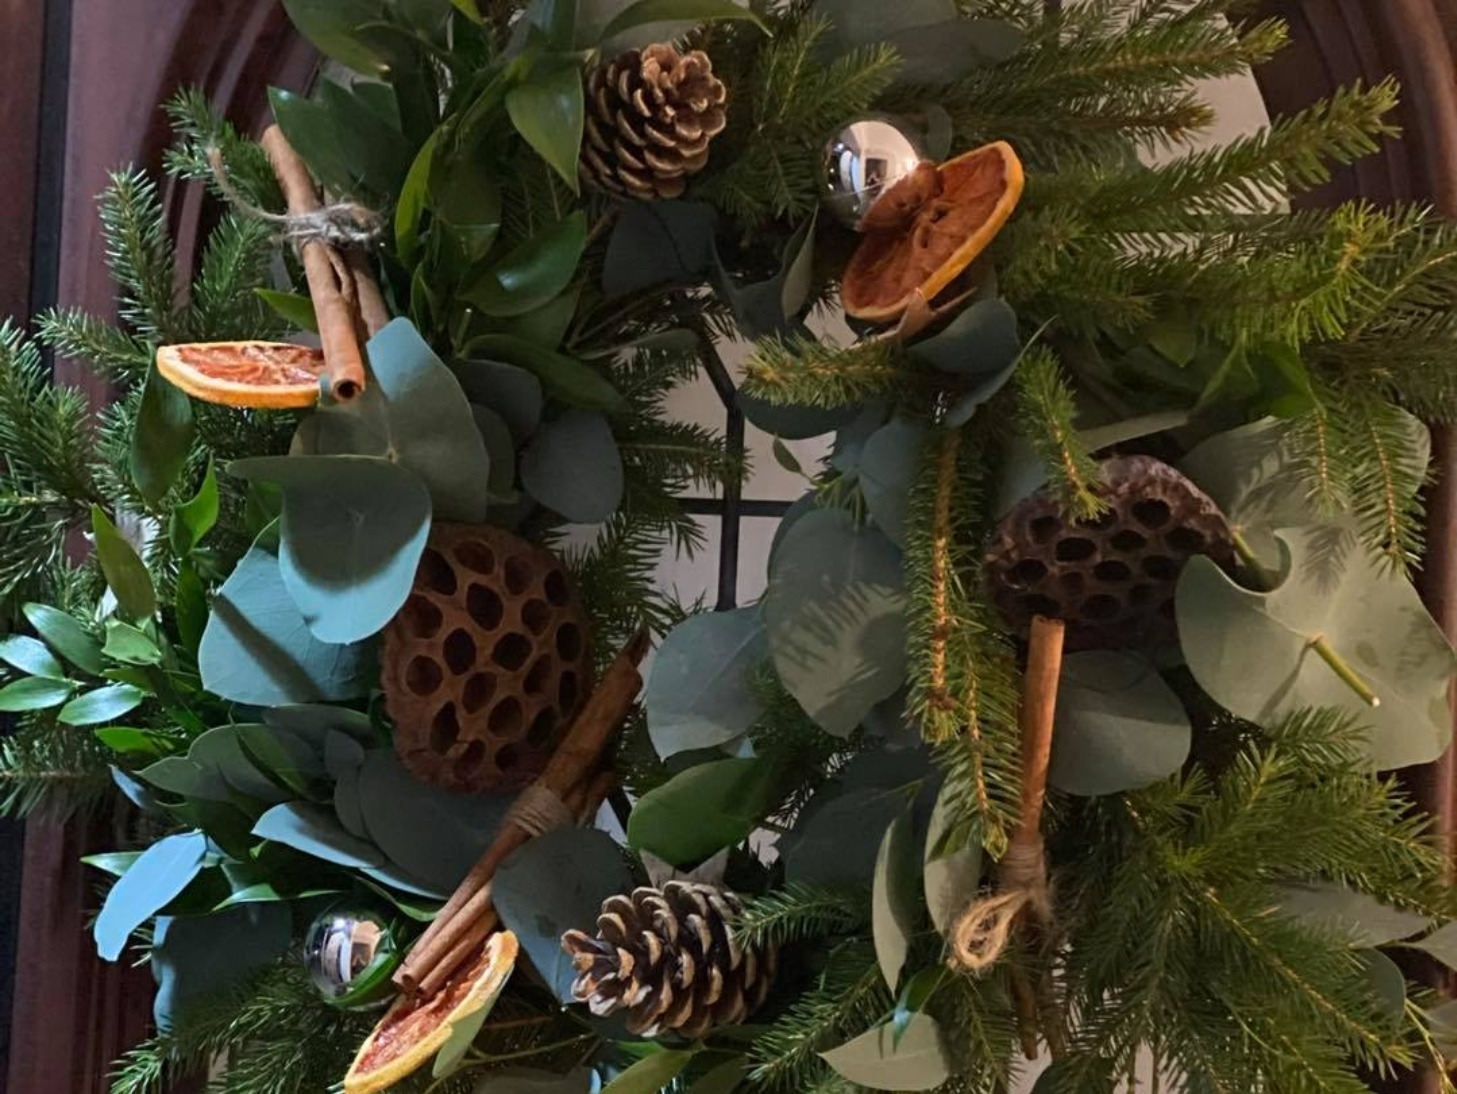 Festive Afternoon Tea and Wreath Making (Monday 13th December Workshop Room 1: 3pm-6pm) DEPOSIT